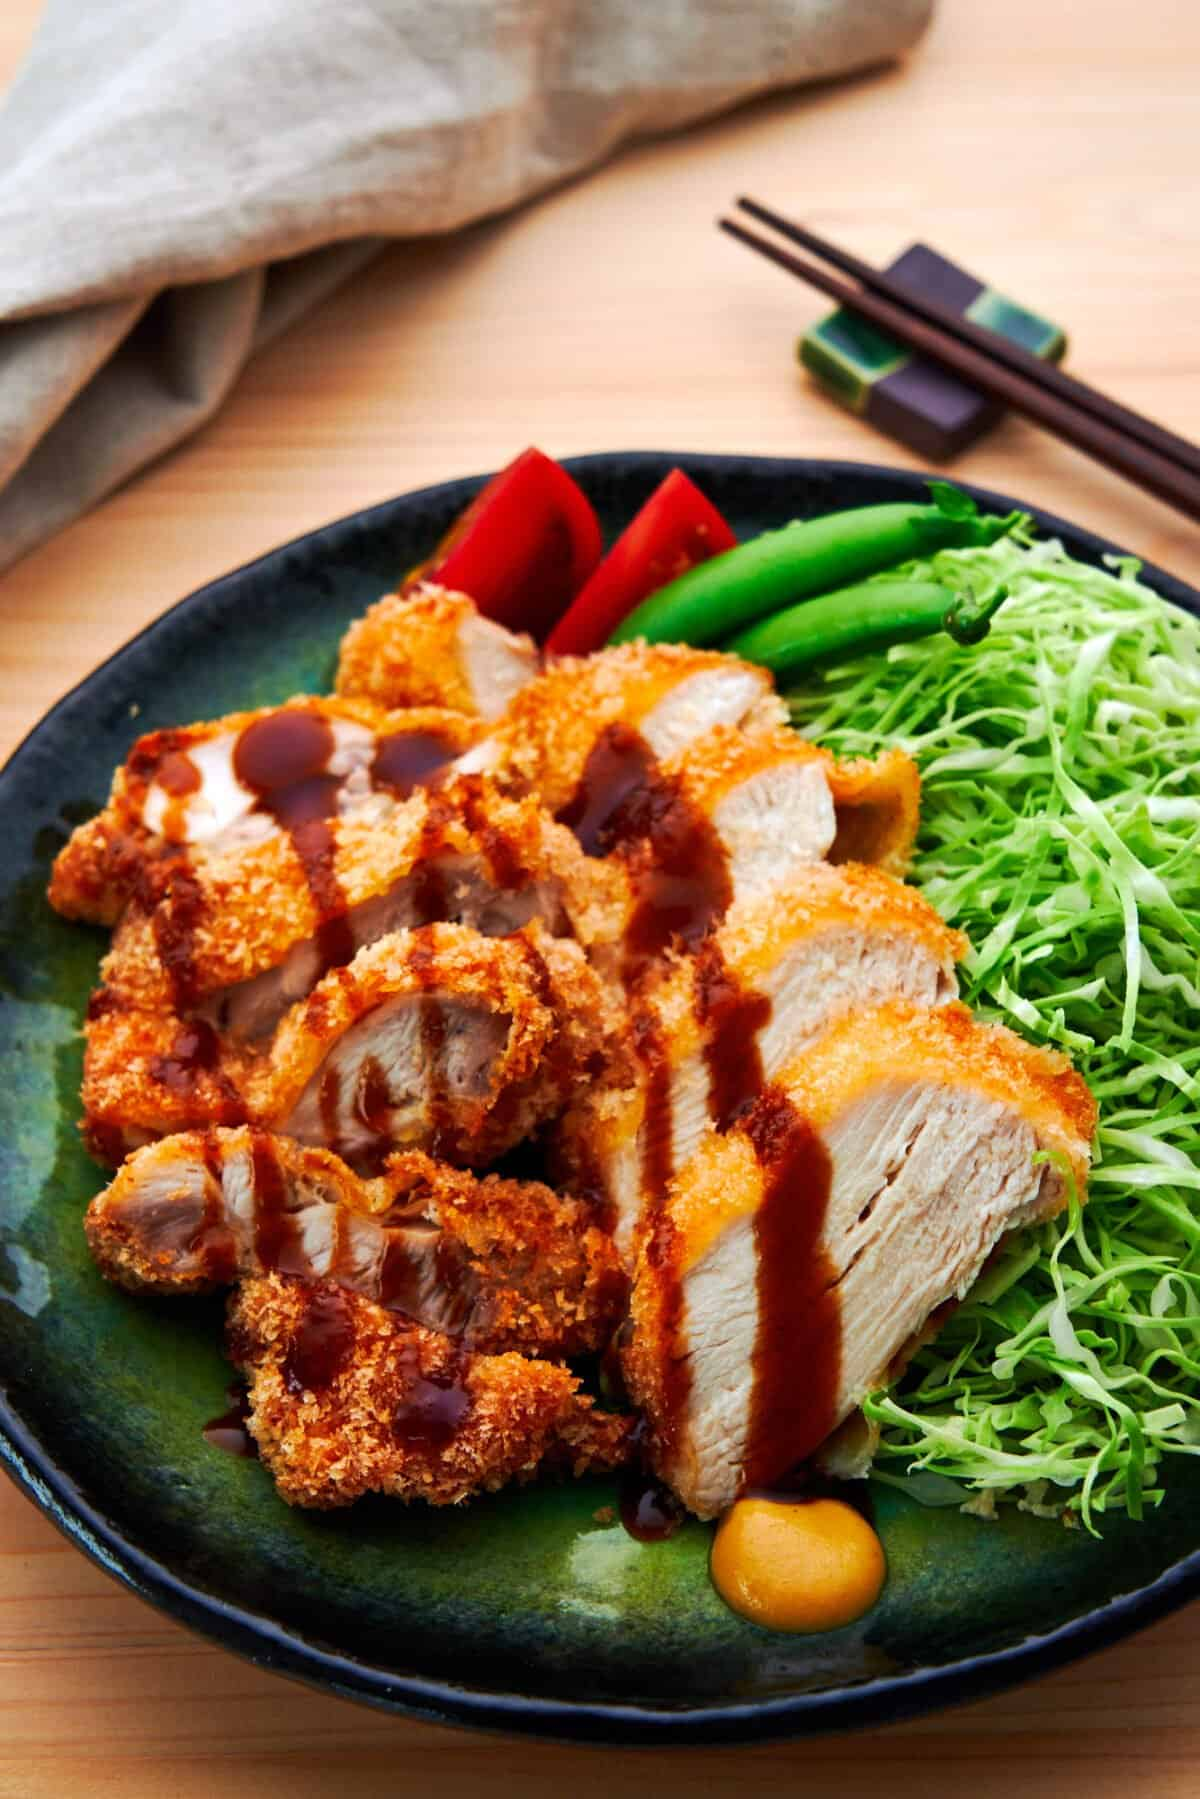 Breaded in panko, this mouthwatering Japanese Chicken Katsu is crispy on the outside and juicy on the inside.